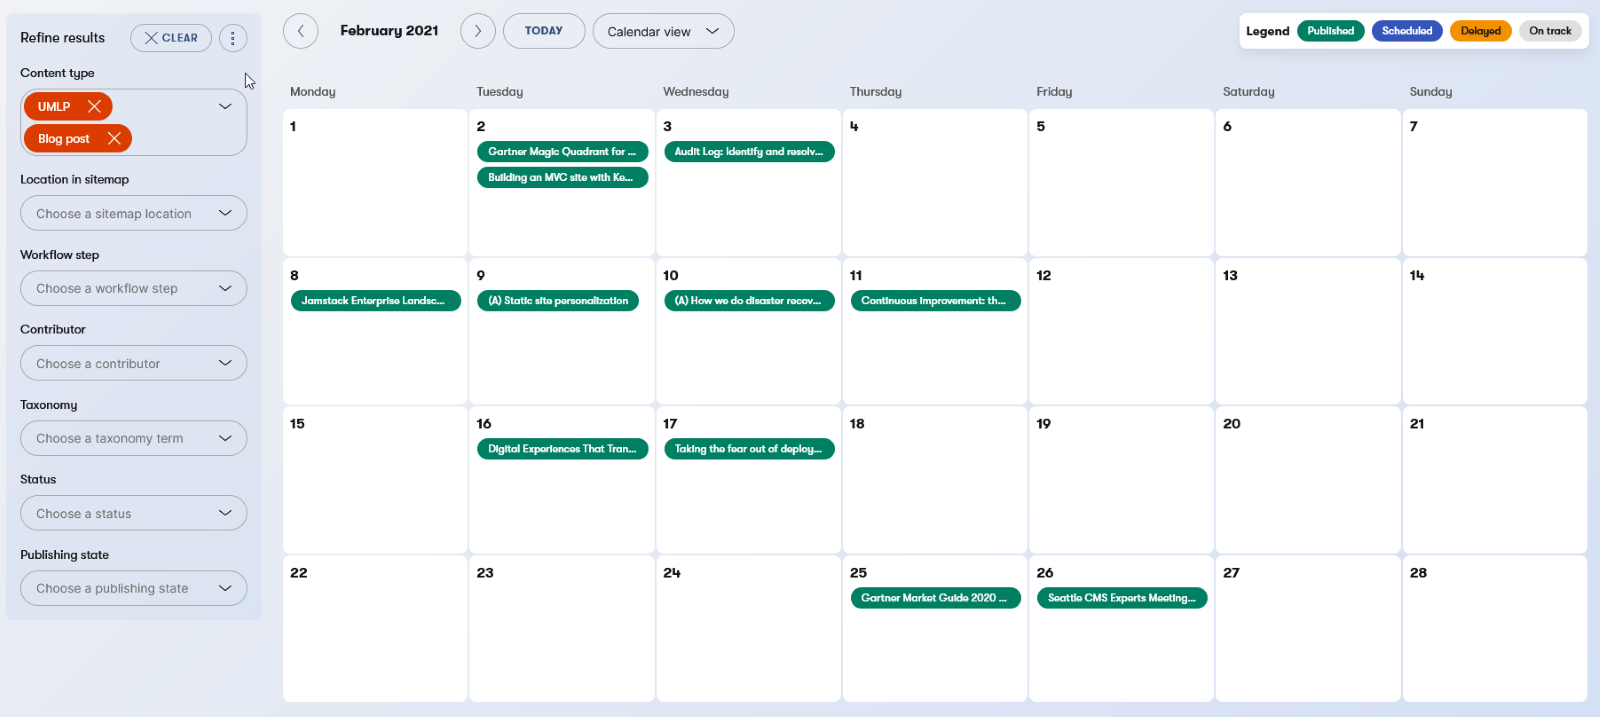 Editorial calendar that shows the state of all your content items